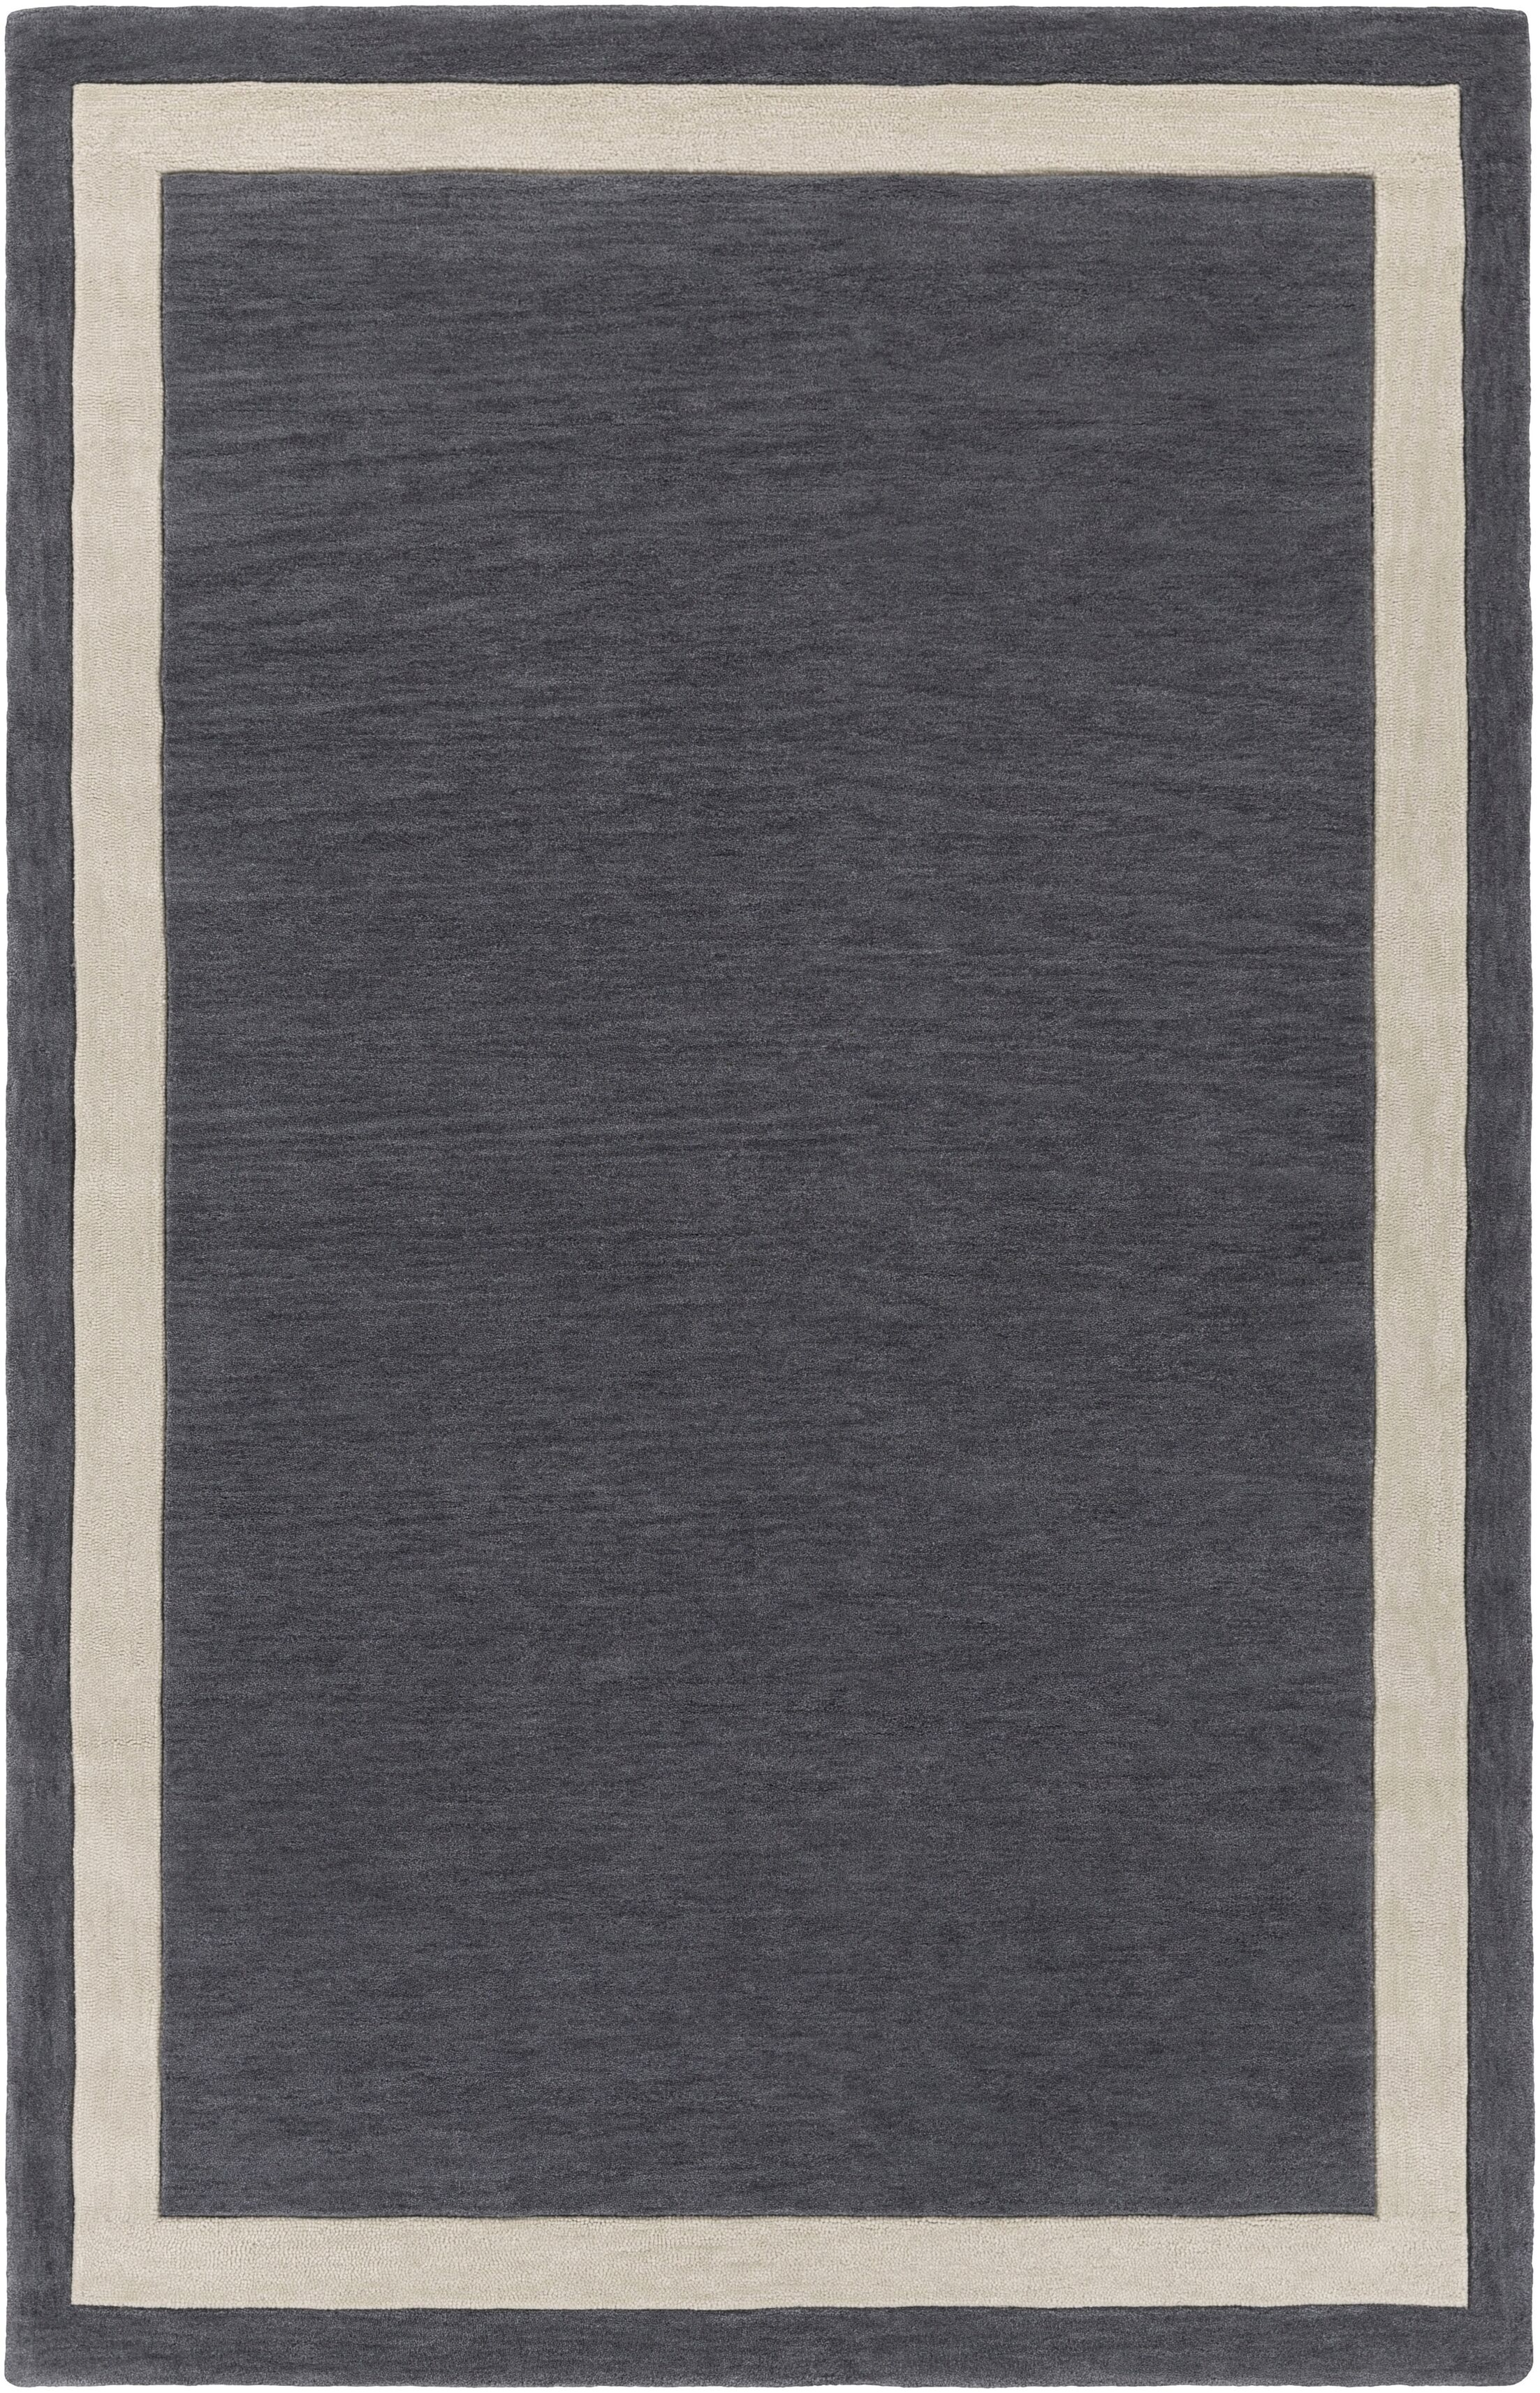 Cutrer Gray & Ivory Area Rug Rug Size: Rectangle 5' x 7'6